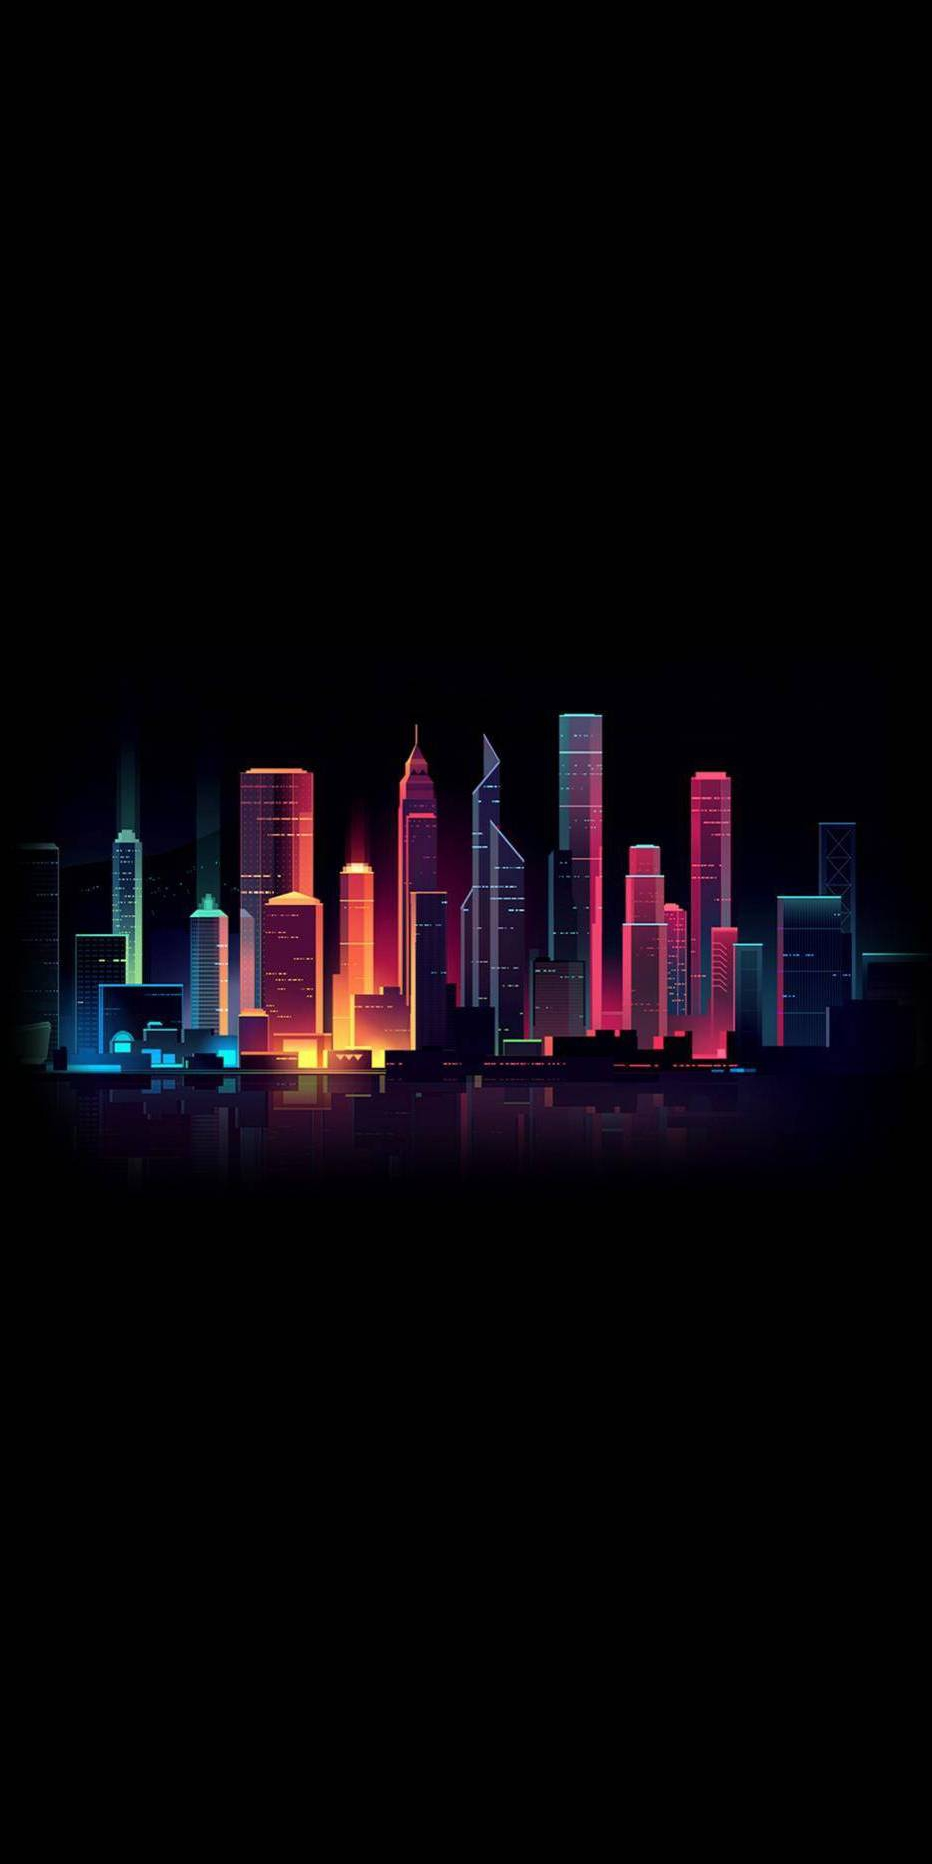 Amoled Dark City iPhone Wallpaper